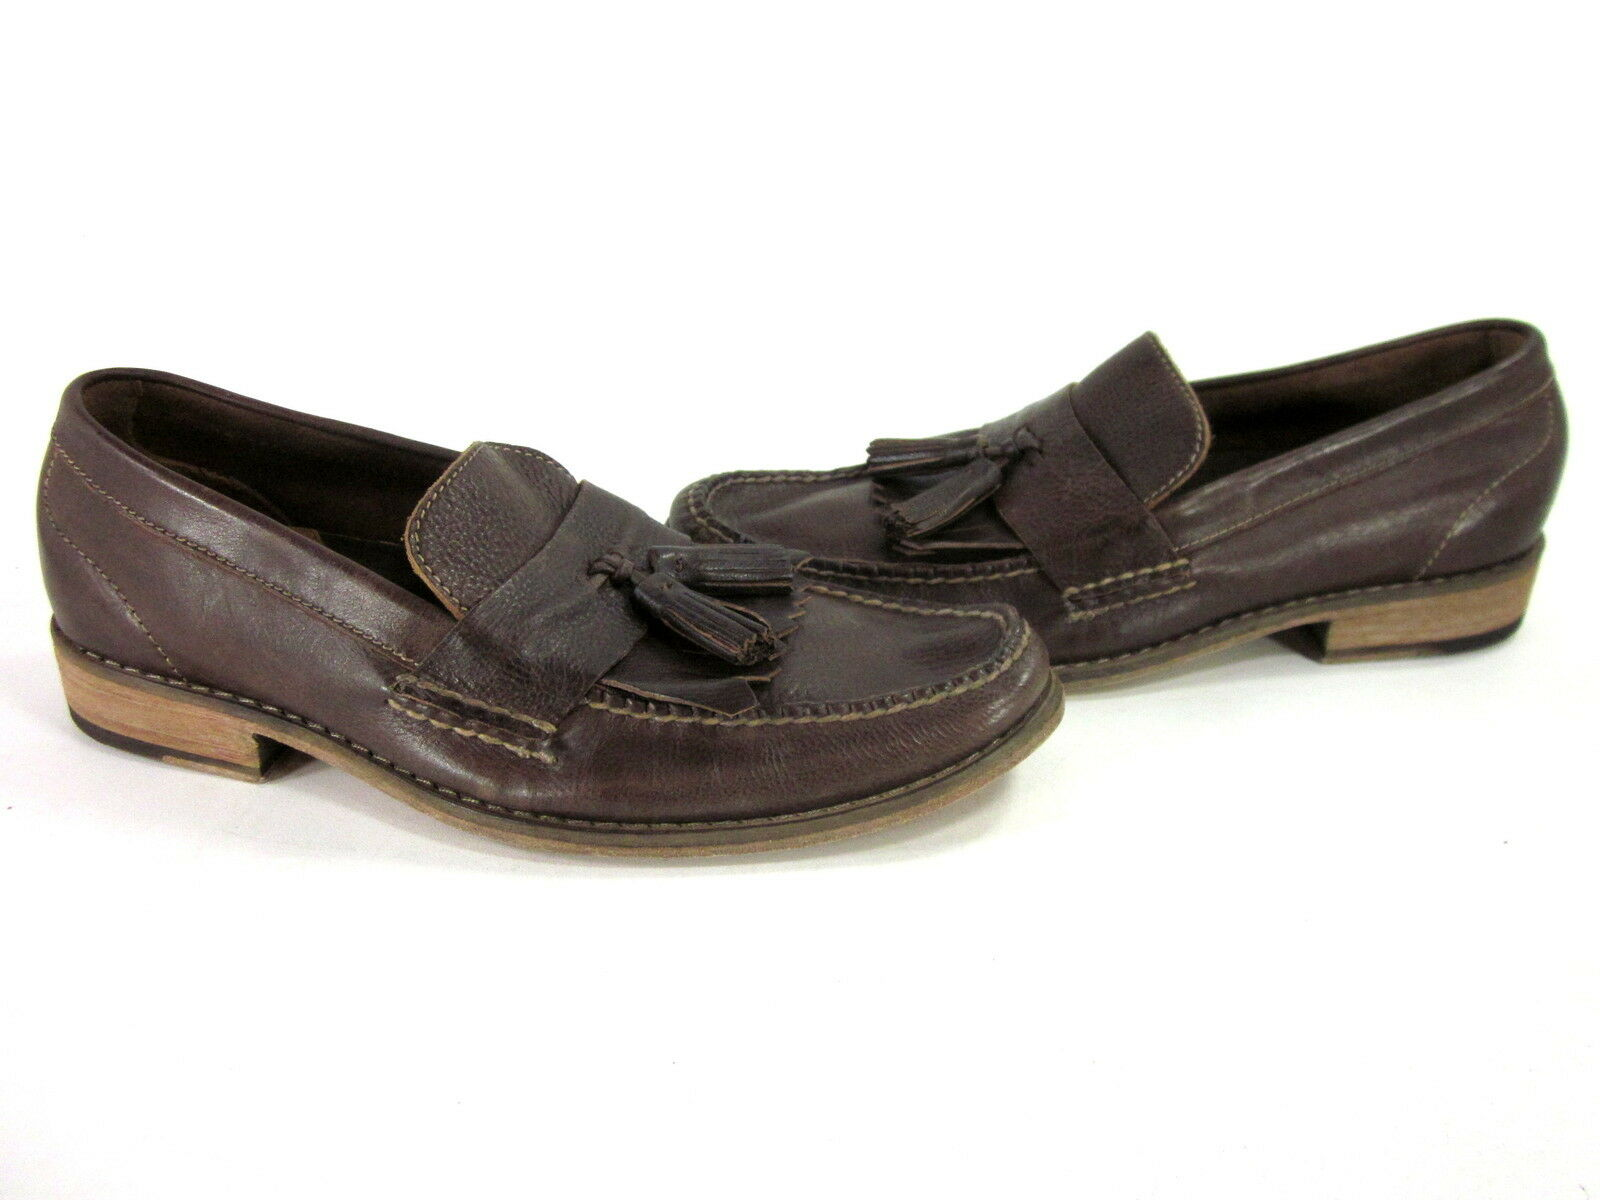 COLE HAAN AIR DELANCY SHAWL MEN'S COMFORT LOAFERS LEATHER BROWN US SZ 7.5 MEDIUM